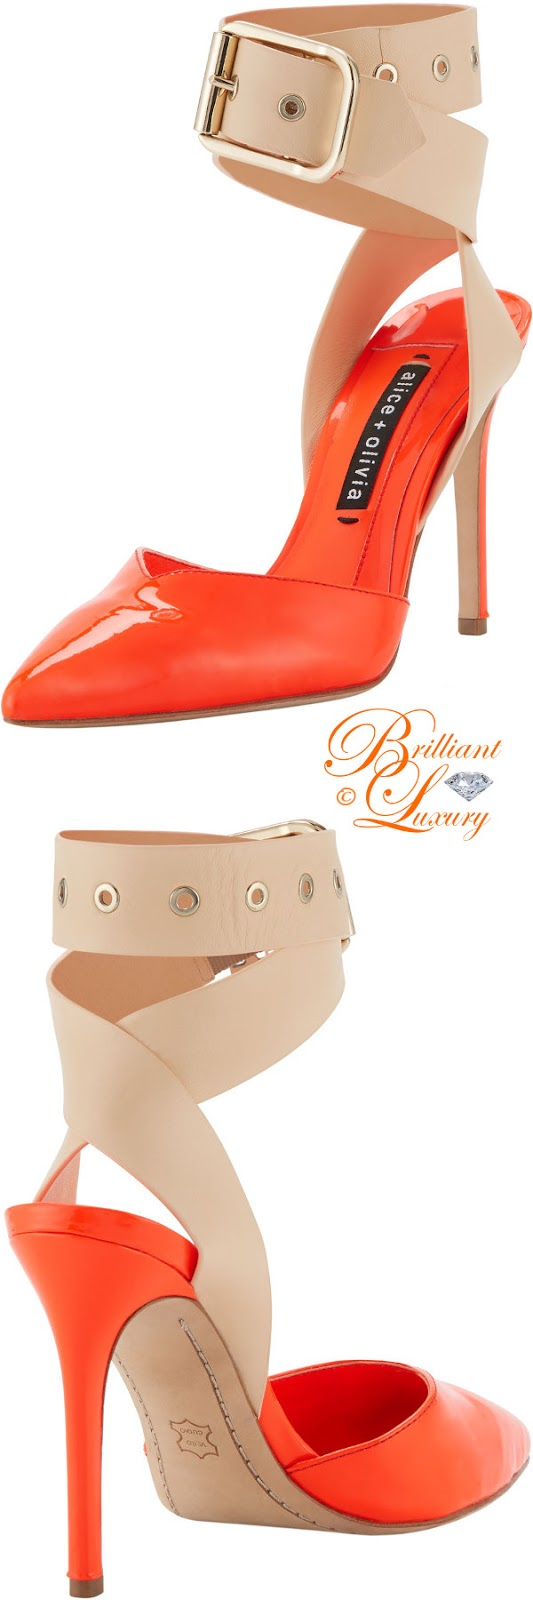 Brilliant Luxury ♦ Alice+Olivia Rachelle Patent two-tone pumps #orange